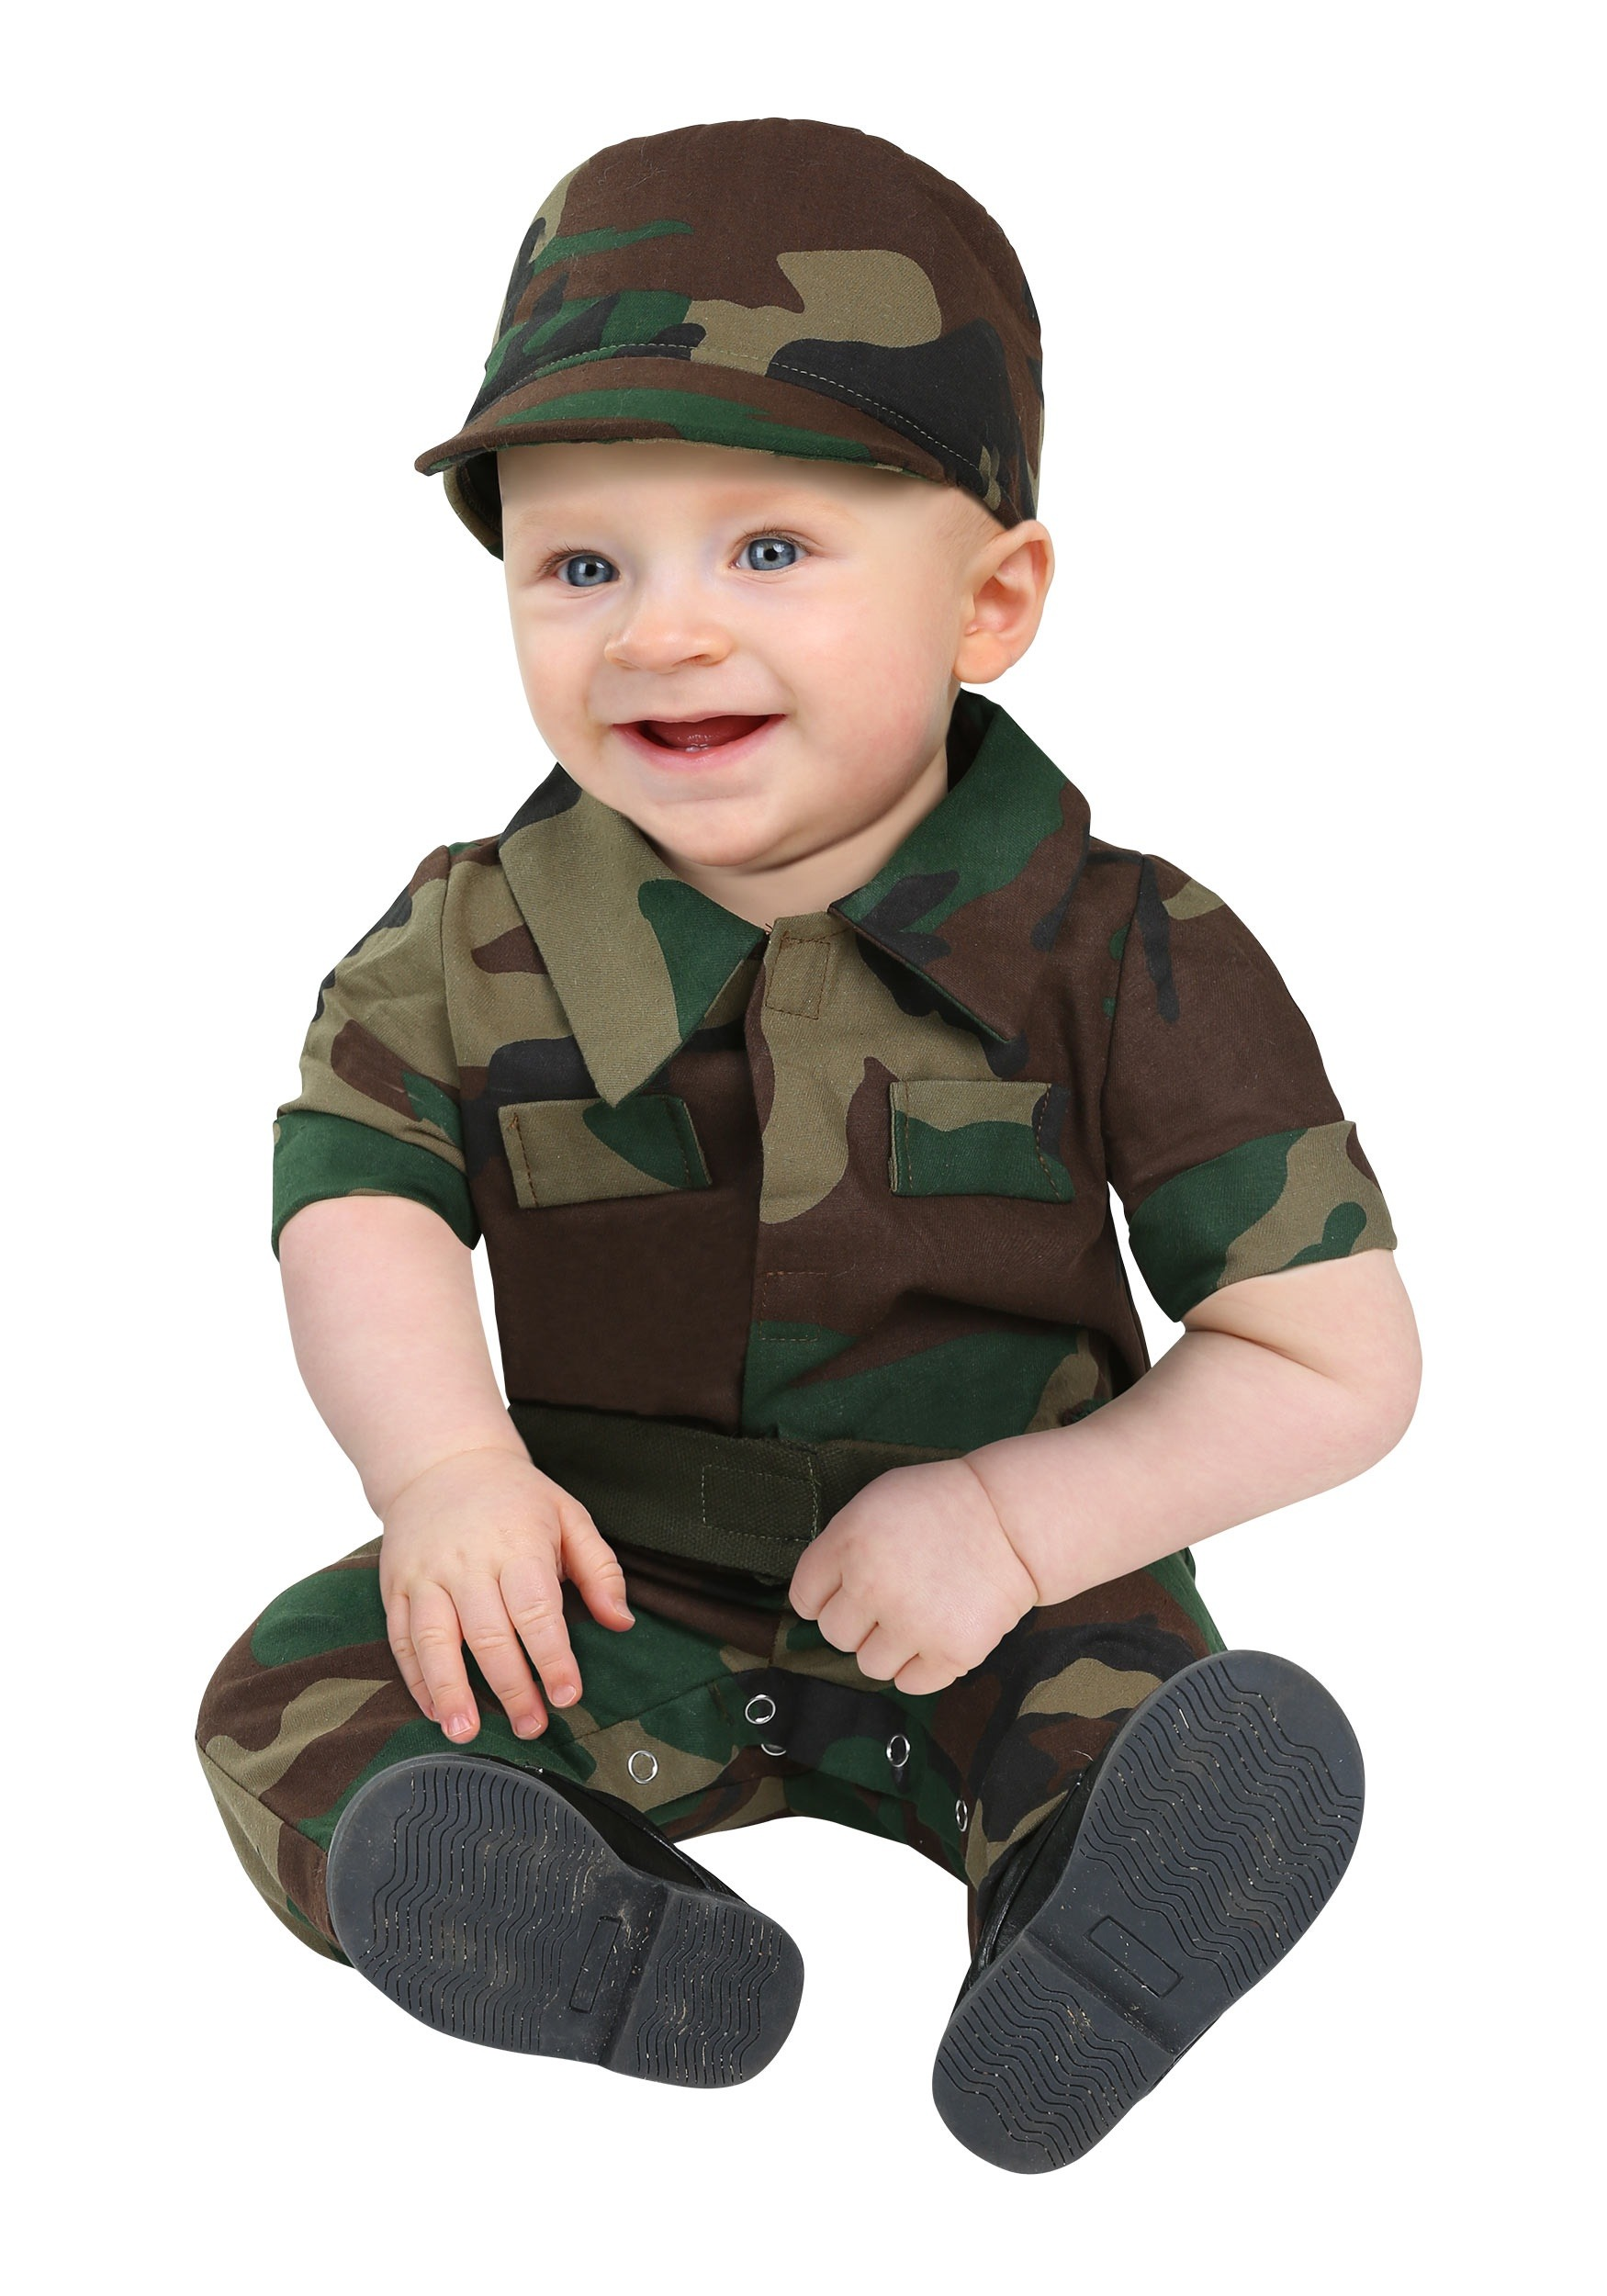 Infantry Soldier Costume for Infants